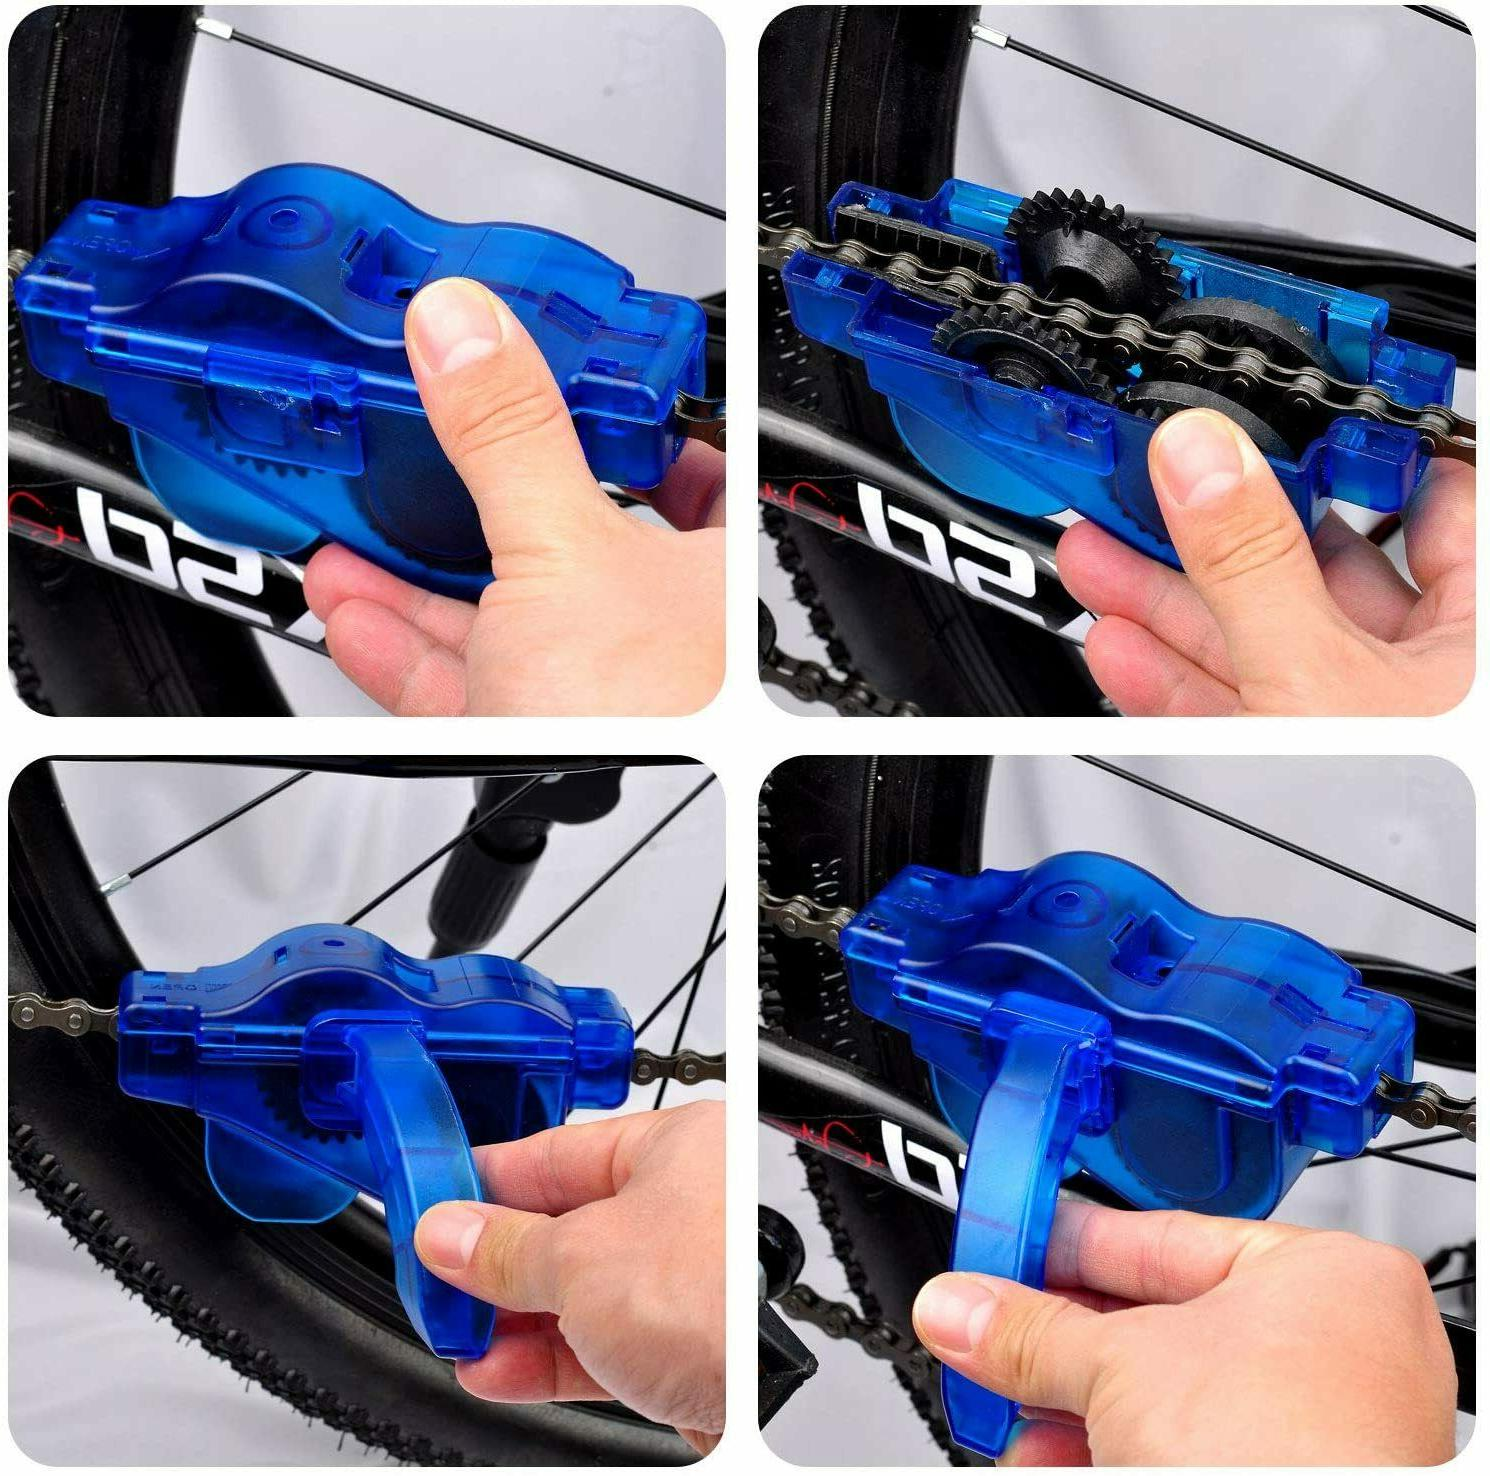 Bicycle & Cleaner Tool Maintenance Kit -Gear Cleaner 4Pcs